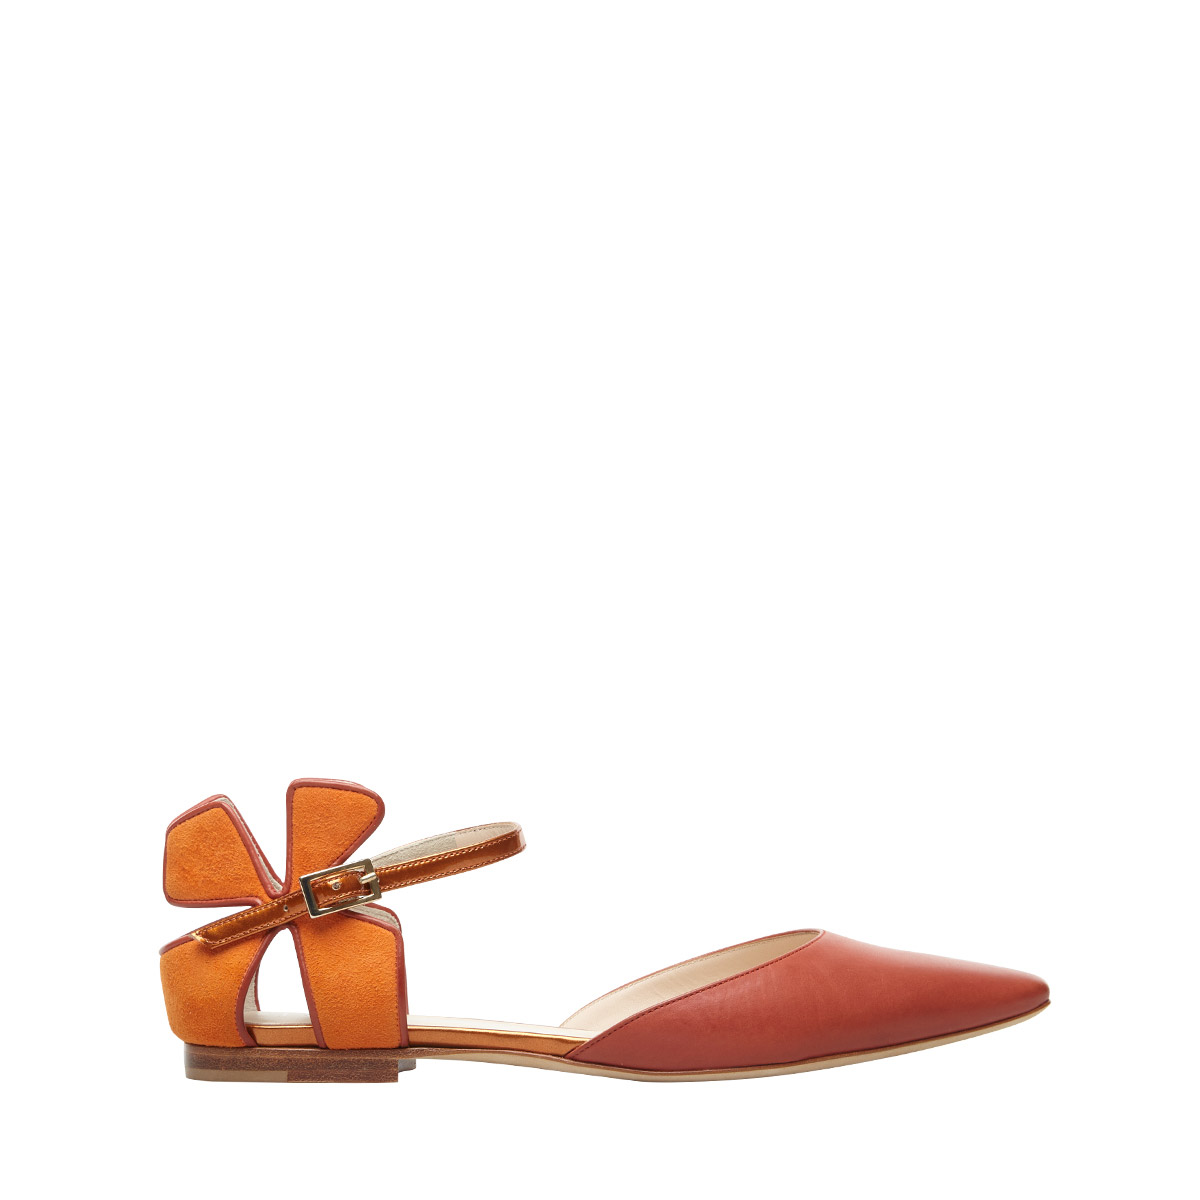 Lella Baldi - Daisy Flat Orange